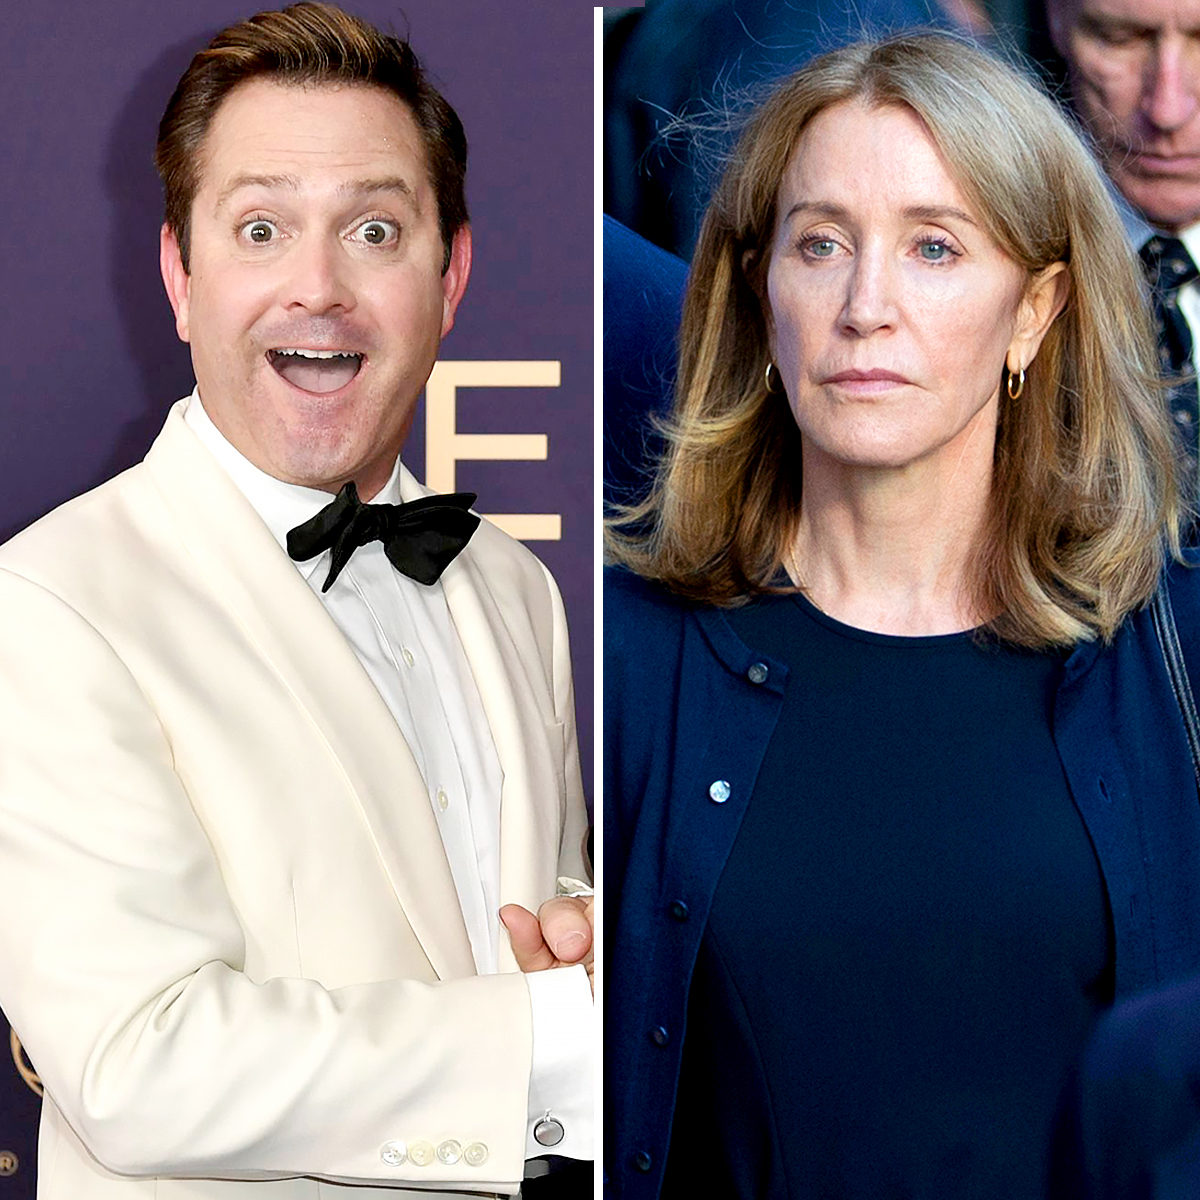 Thomas-Lennon-and-Felicity-Huffman-Emmys-2019-prison